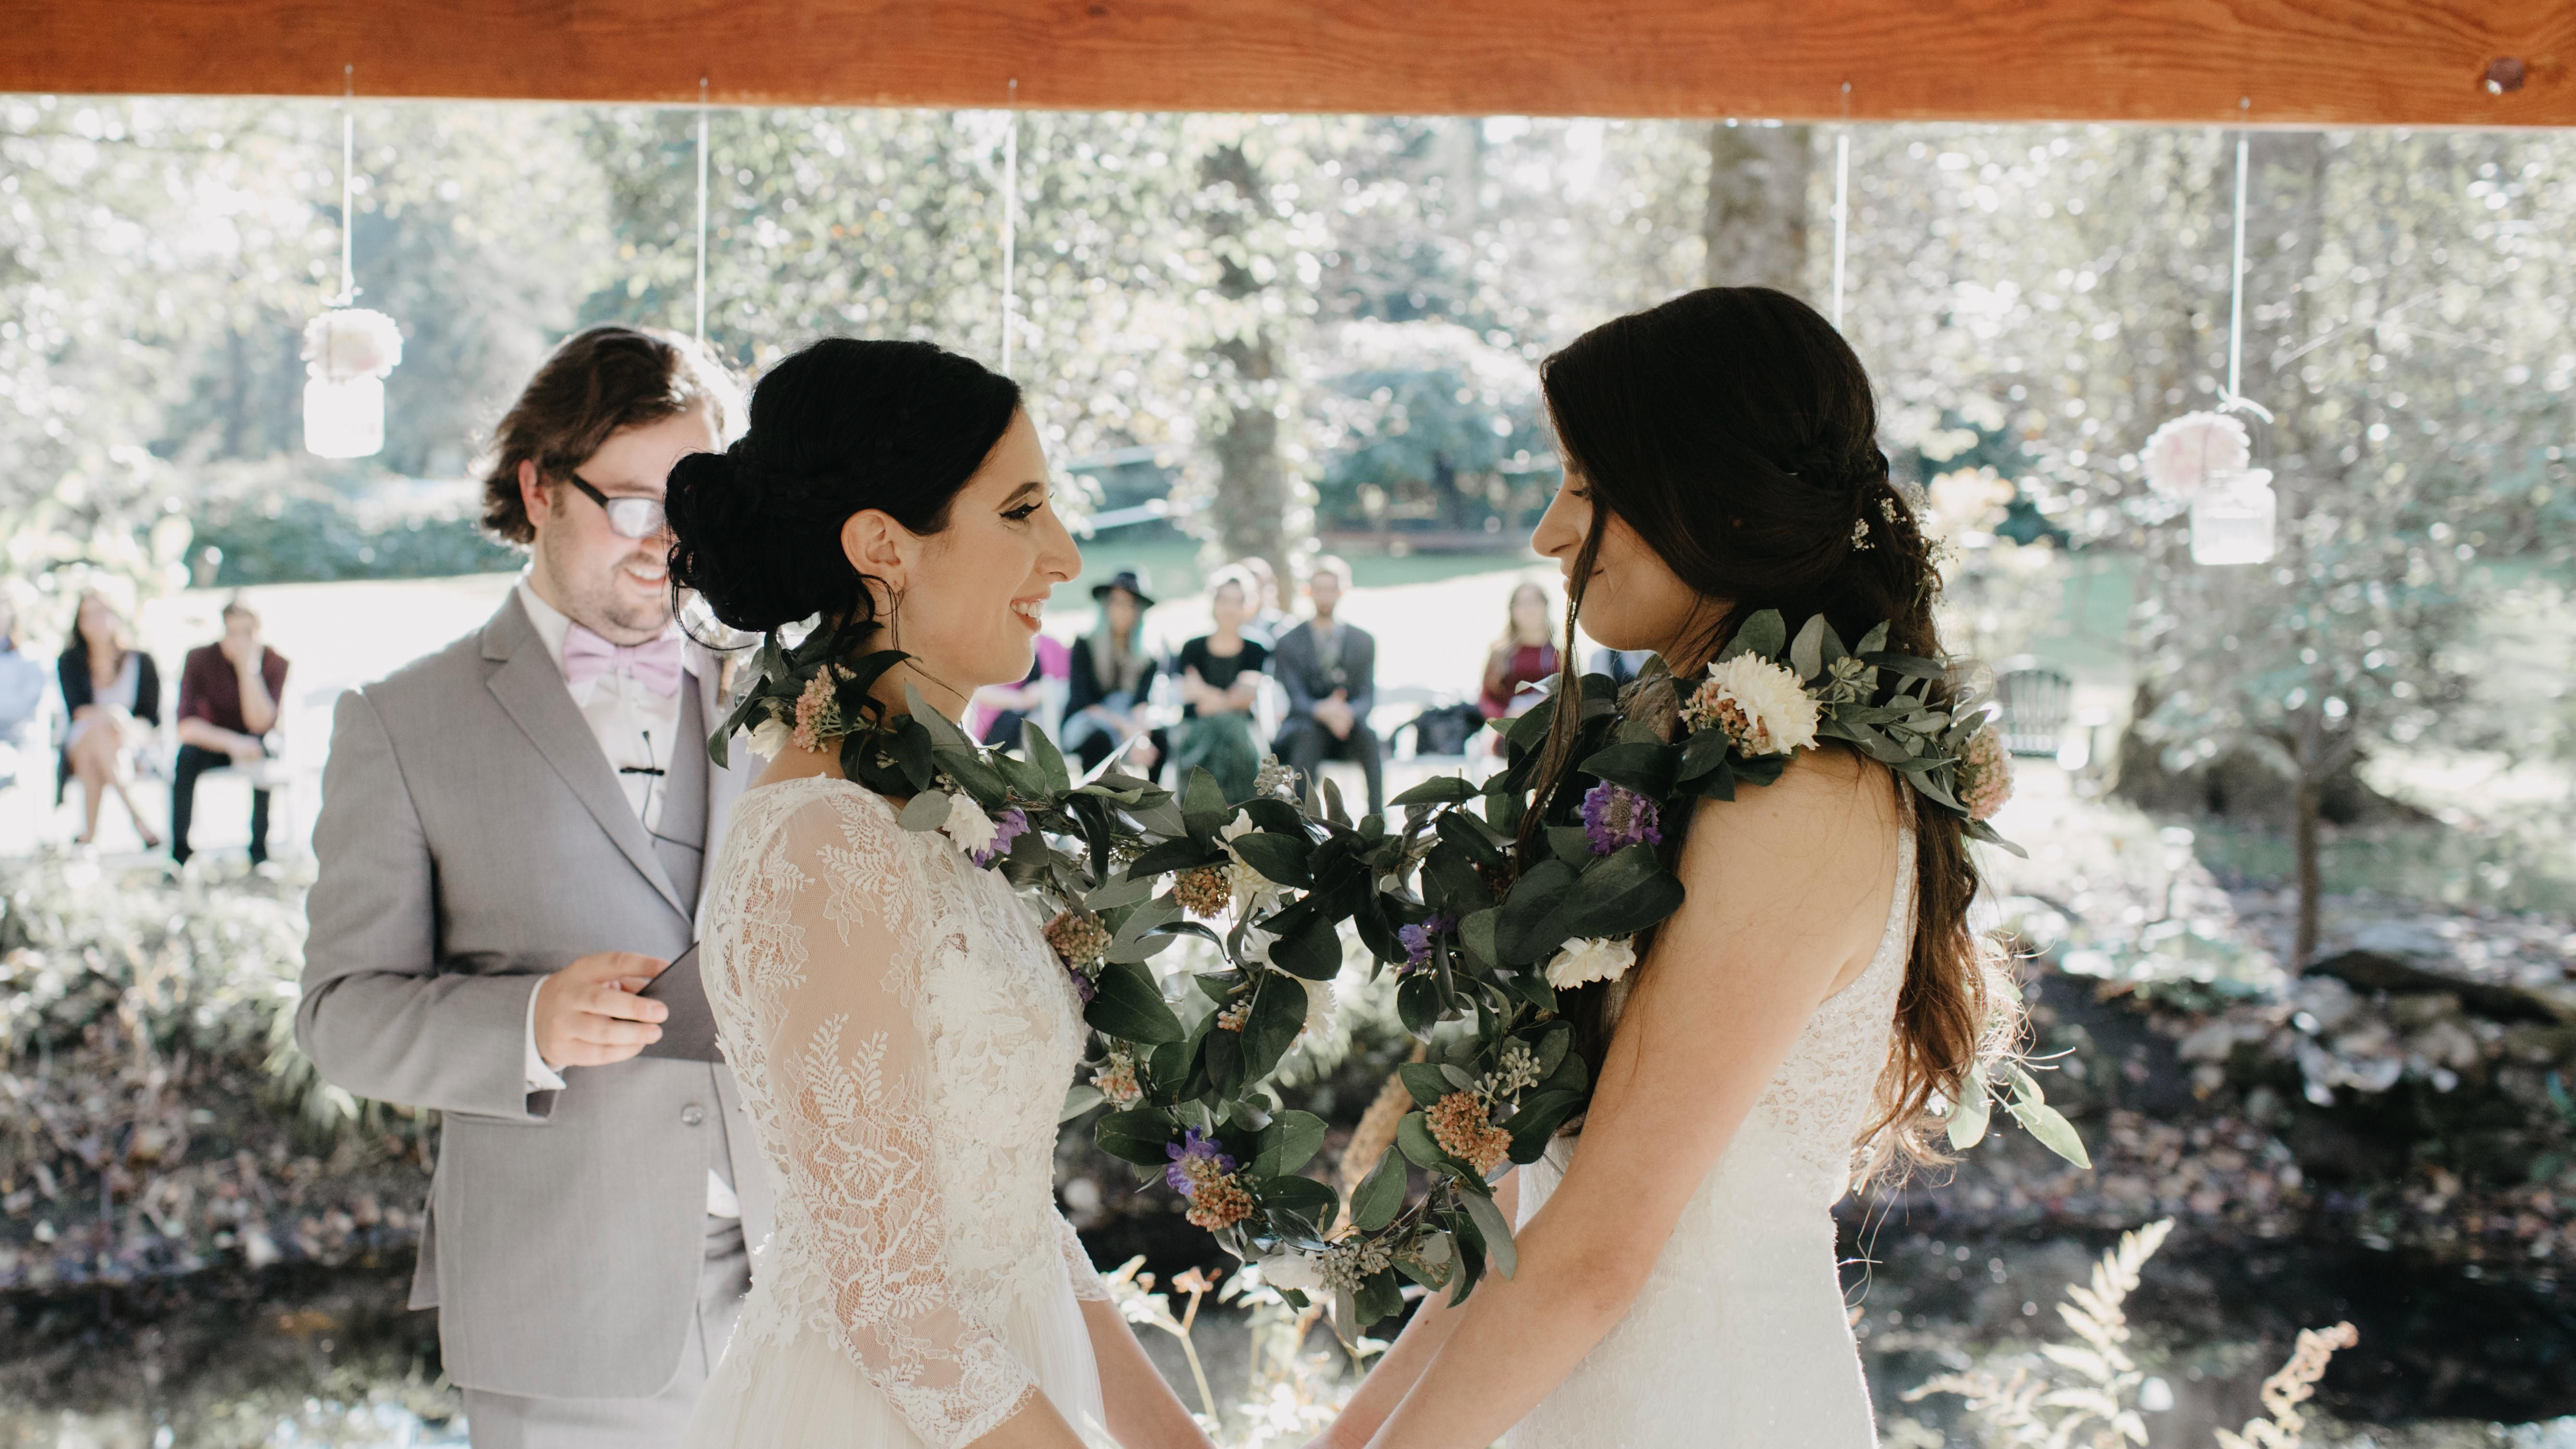 12 Creative Unity Ceremony Ideas for Your Wedding (With